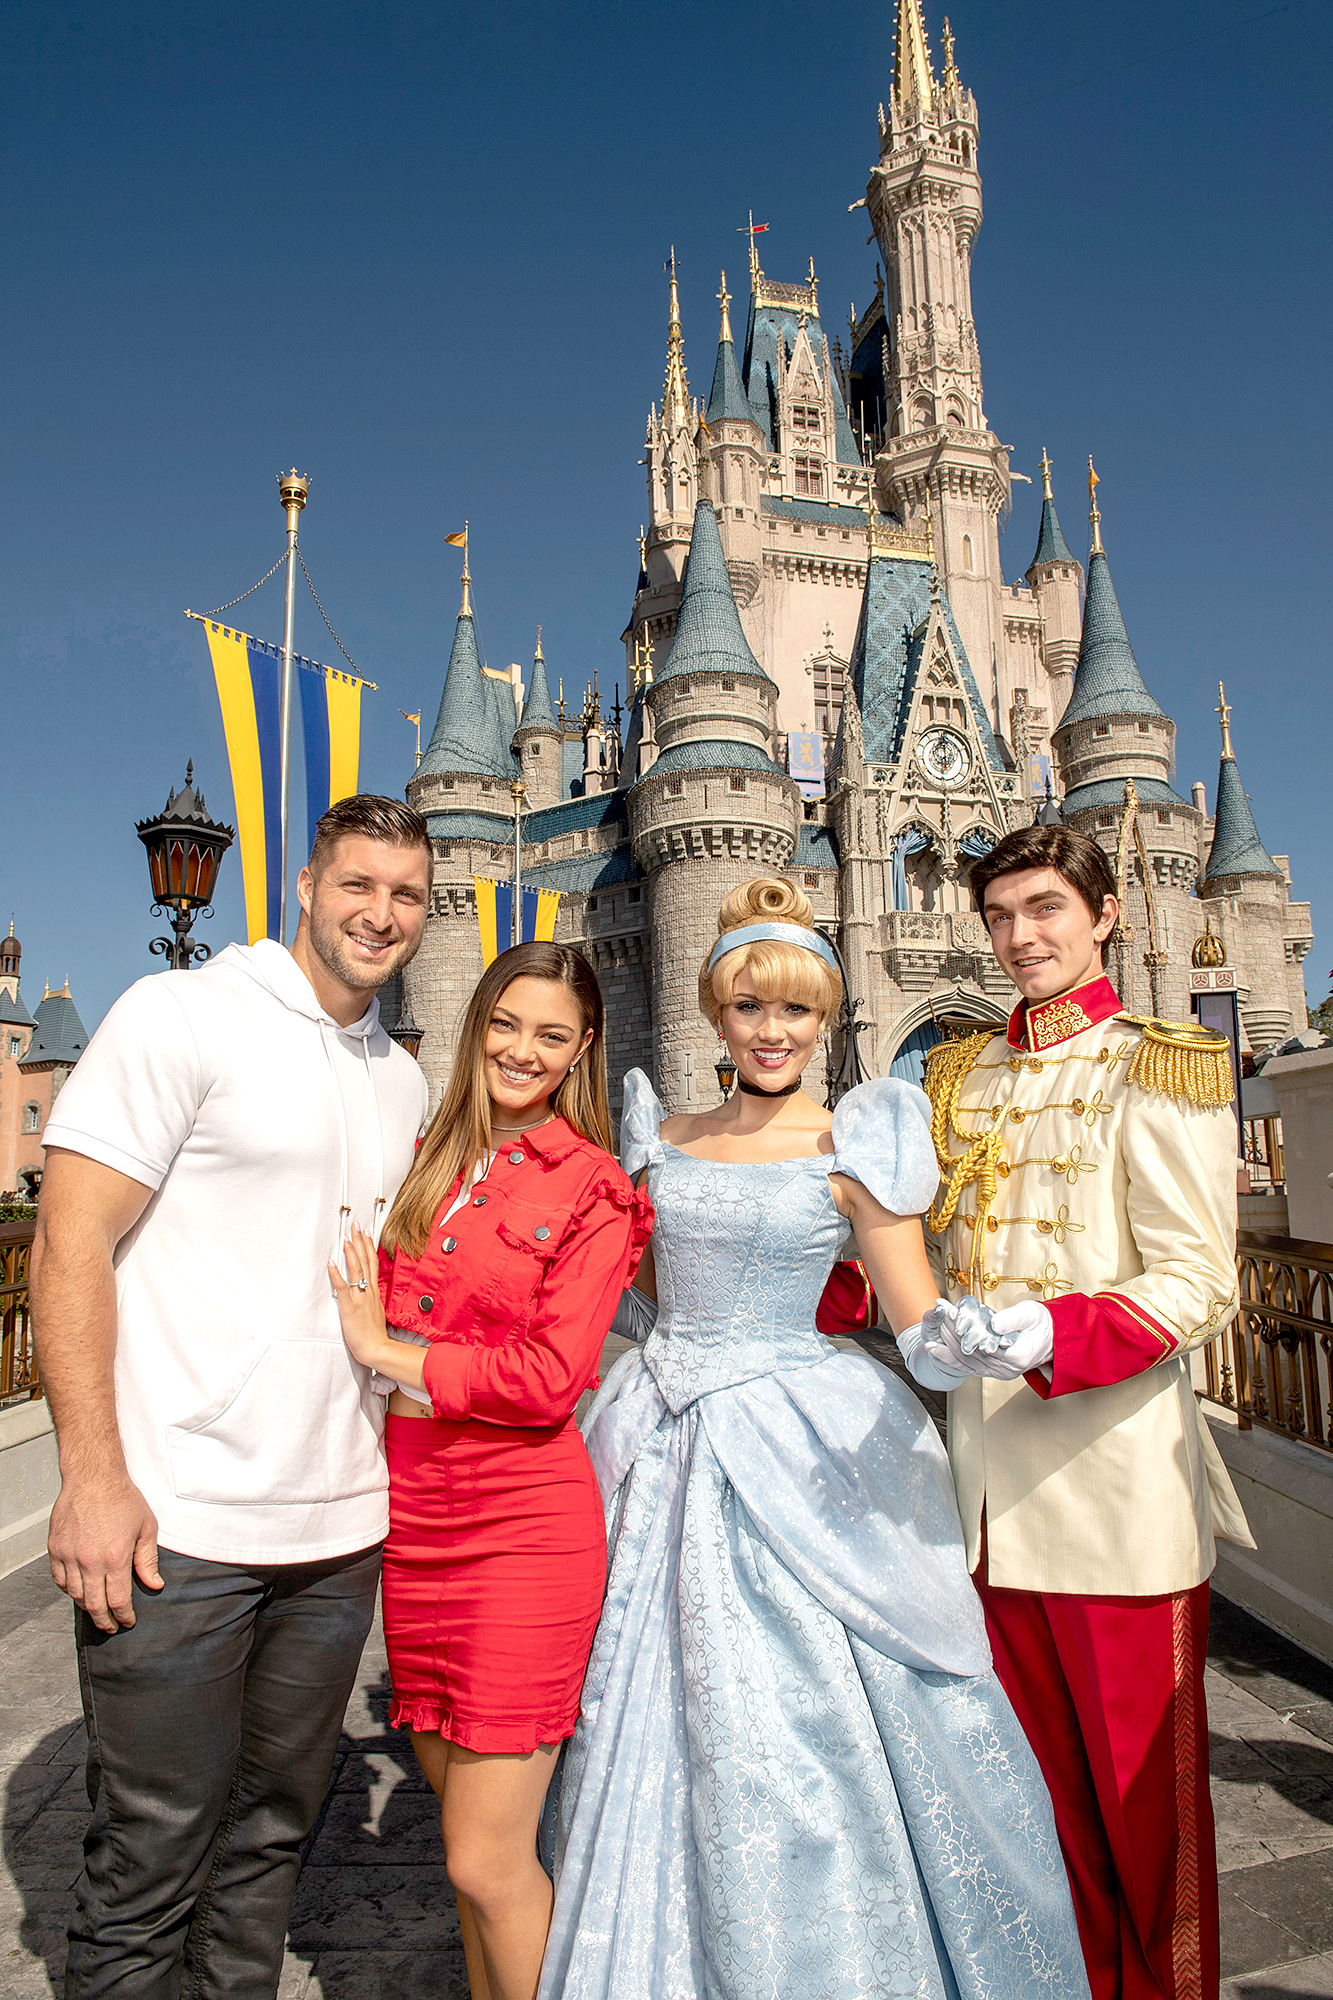 Tim-Tebow-and-Demi-Leigh-Nel-Peters-engaged-disney - Tebow and Nel-Peters celebrated their engagement with a group of family members and friends.